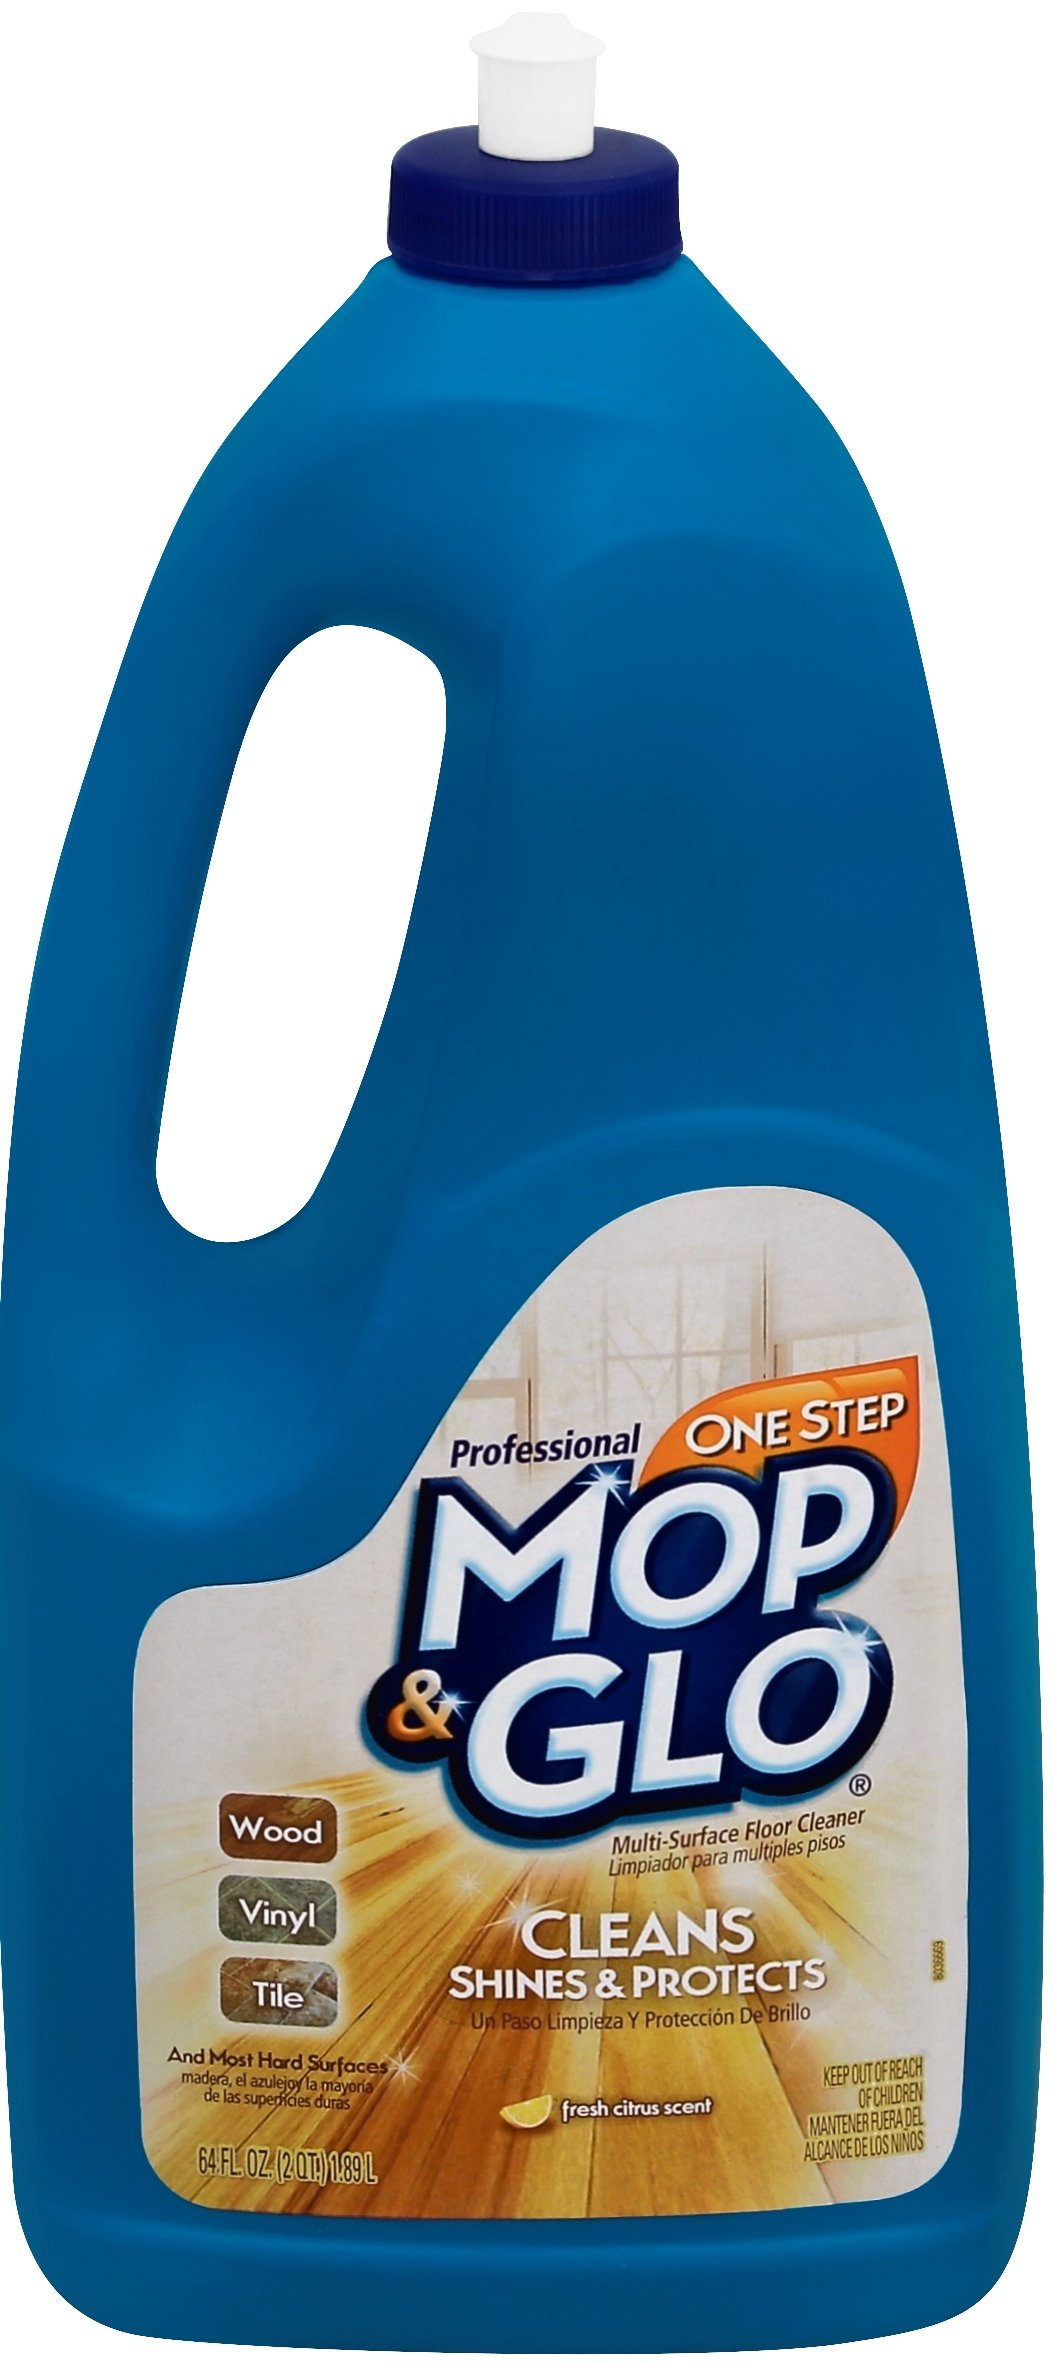 Mop & Glo Professional Multi-Surface Floor Cleaner, 384 fl oz (6 Bottles x 64 oz), Triple Action Shine Cleaner